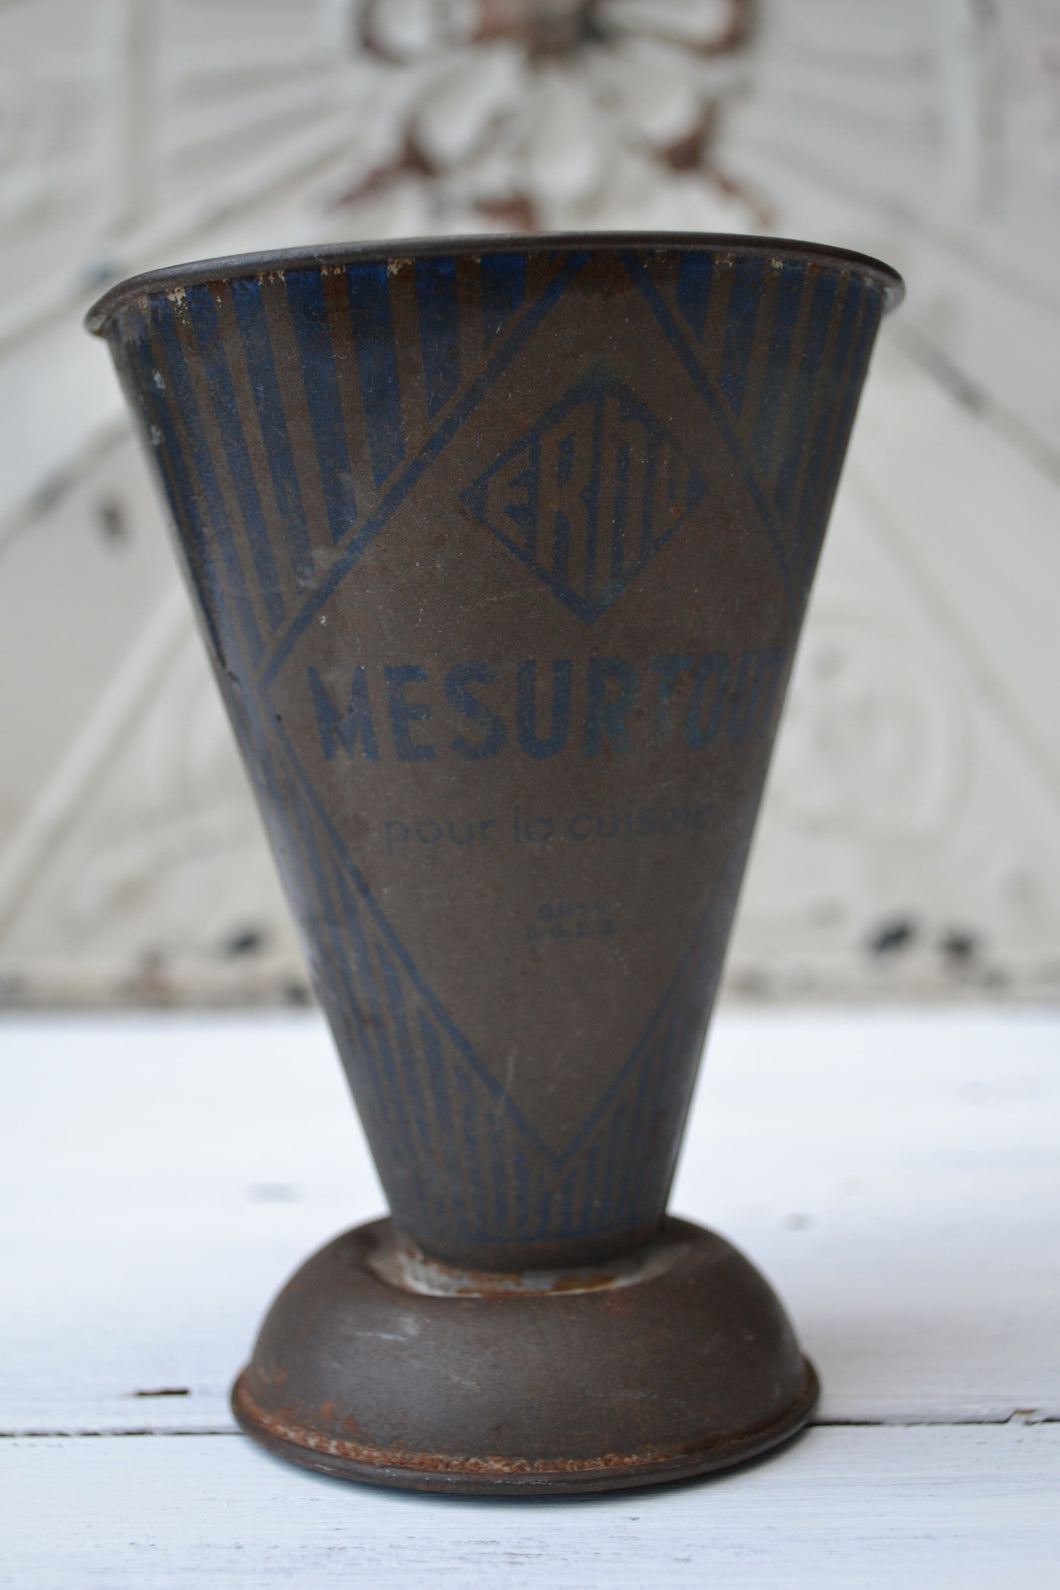 Vintage French Metal Measuring Jug